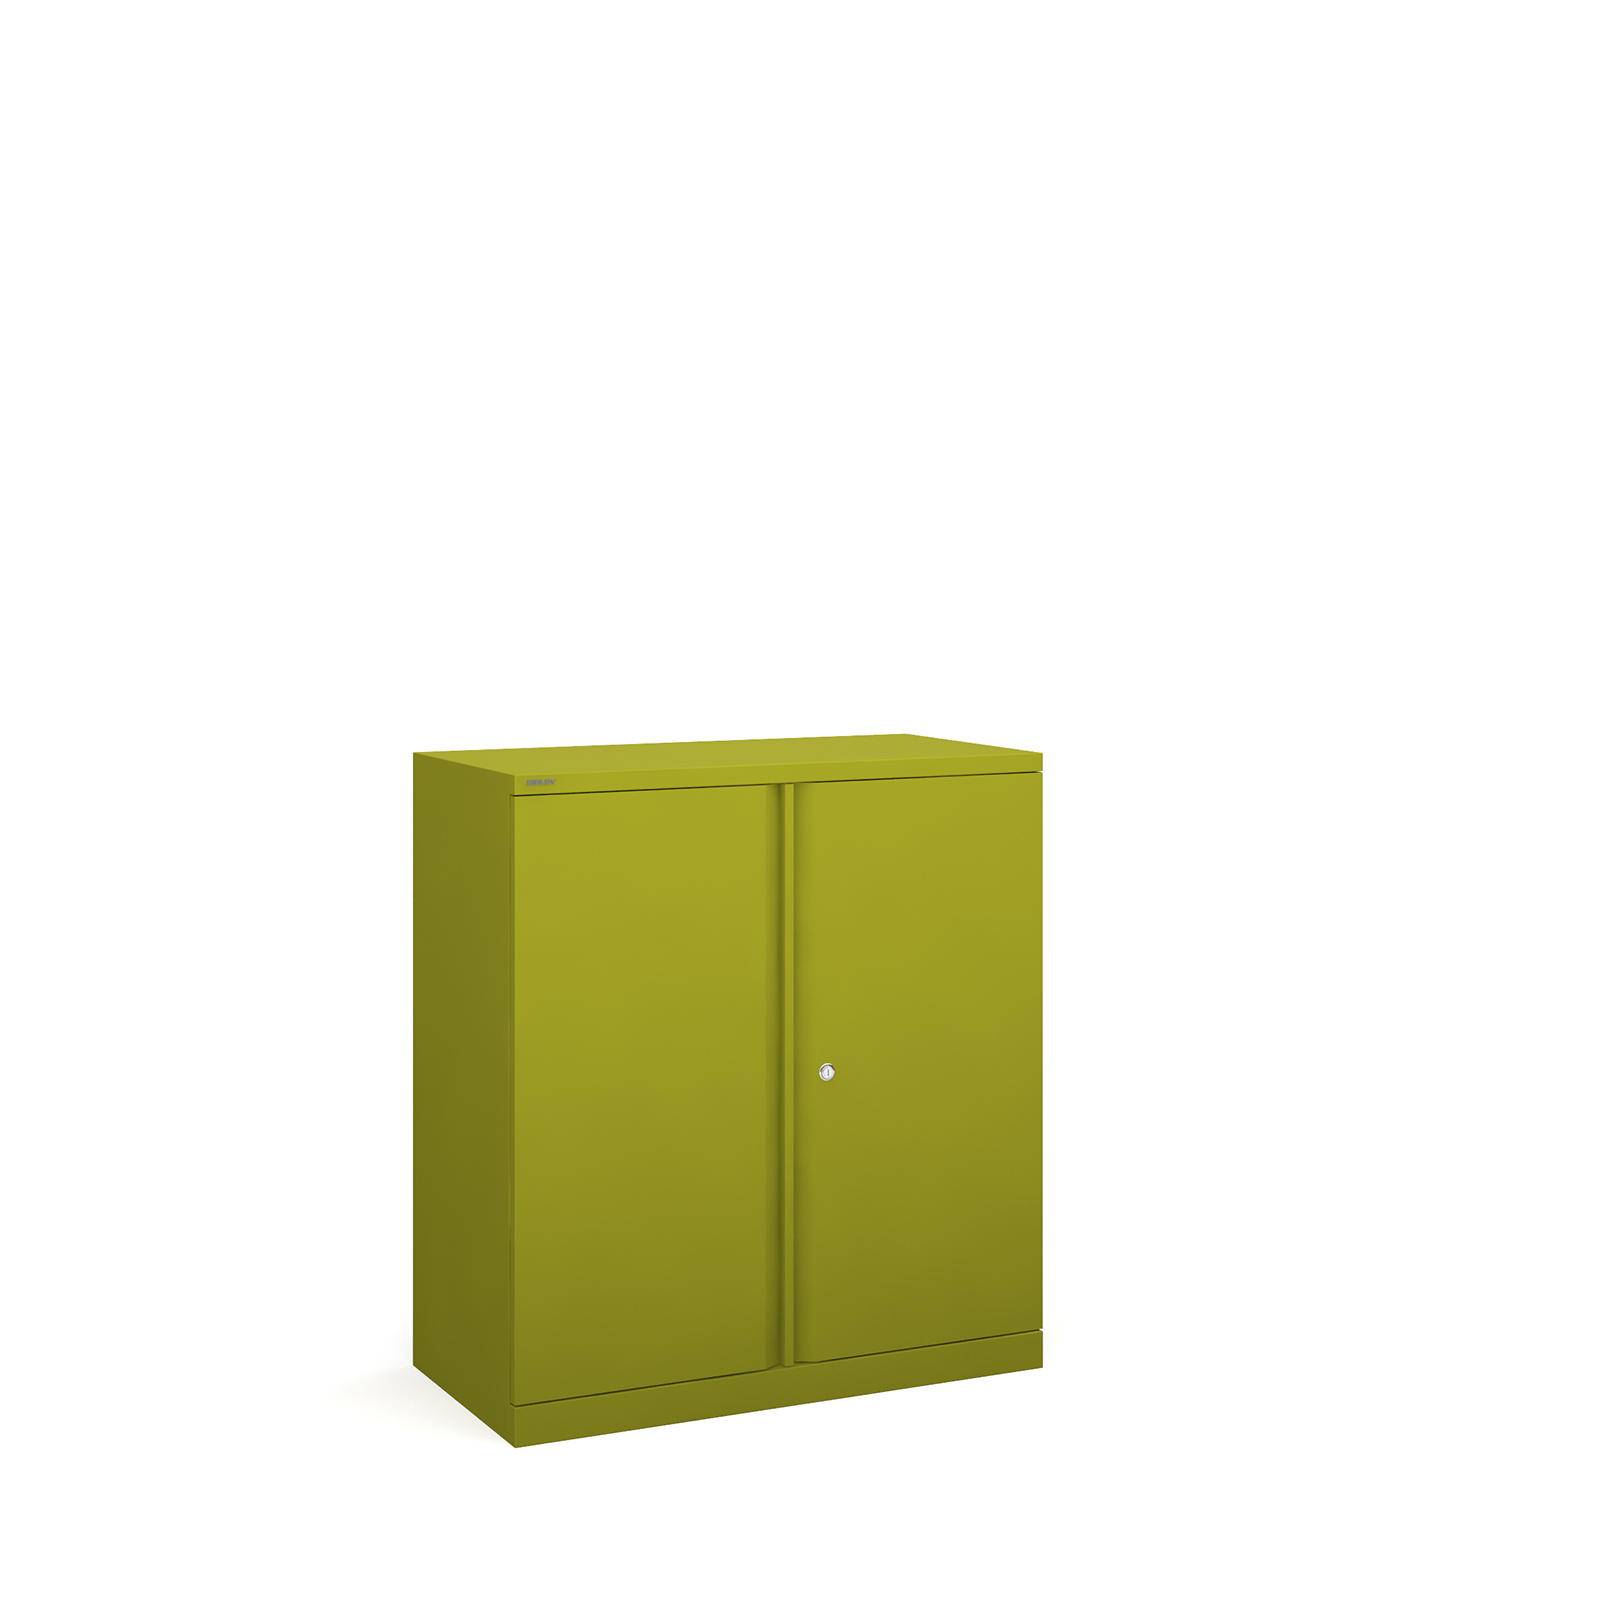 Bisley systems storage low cupboard 1000mm high - green